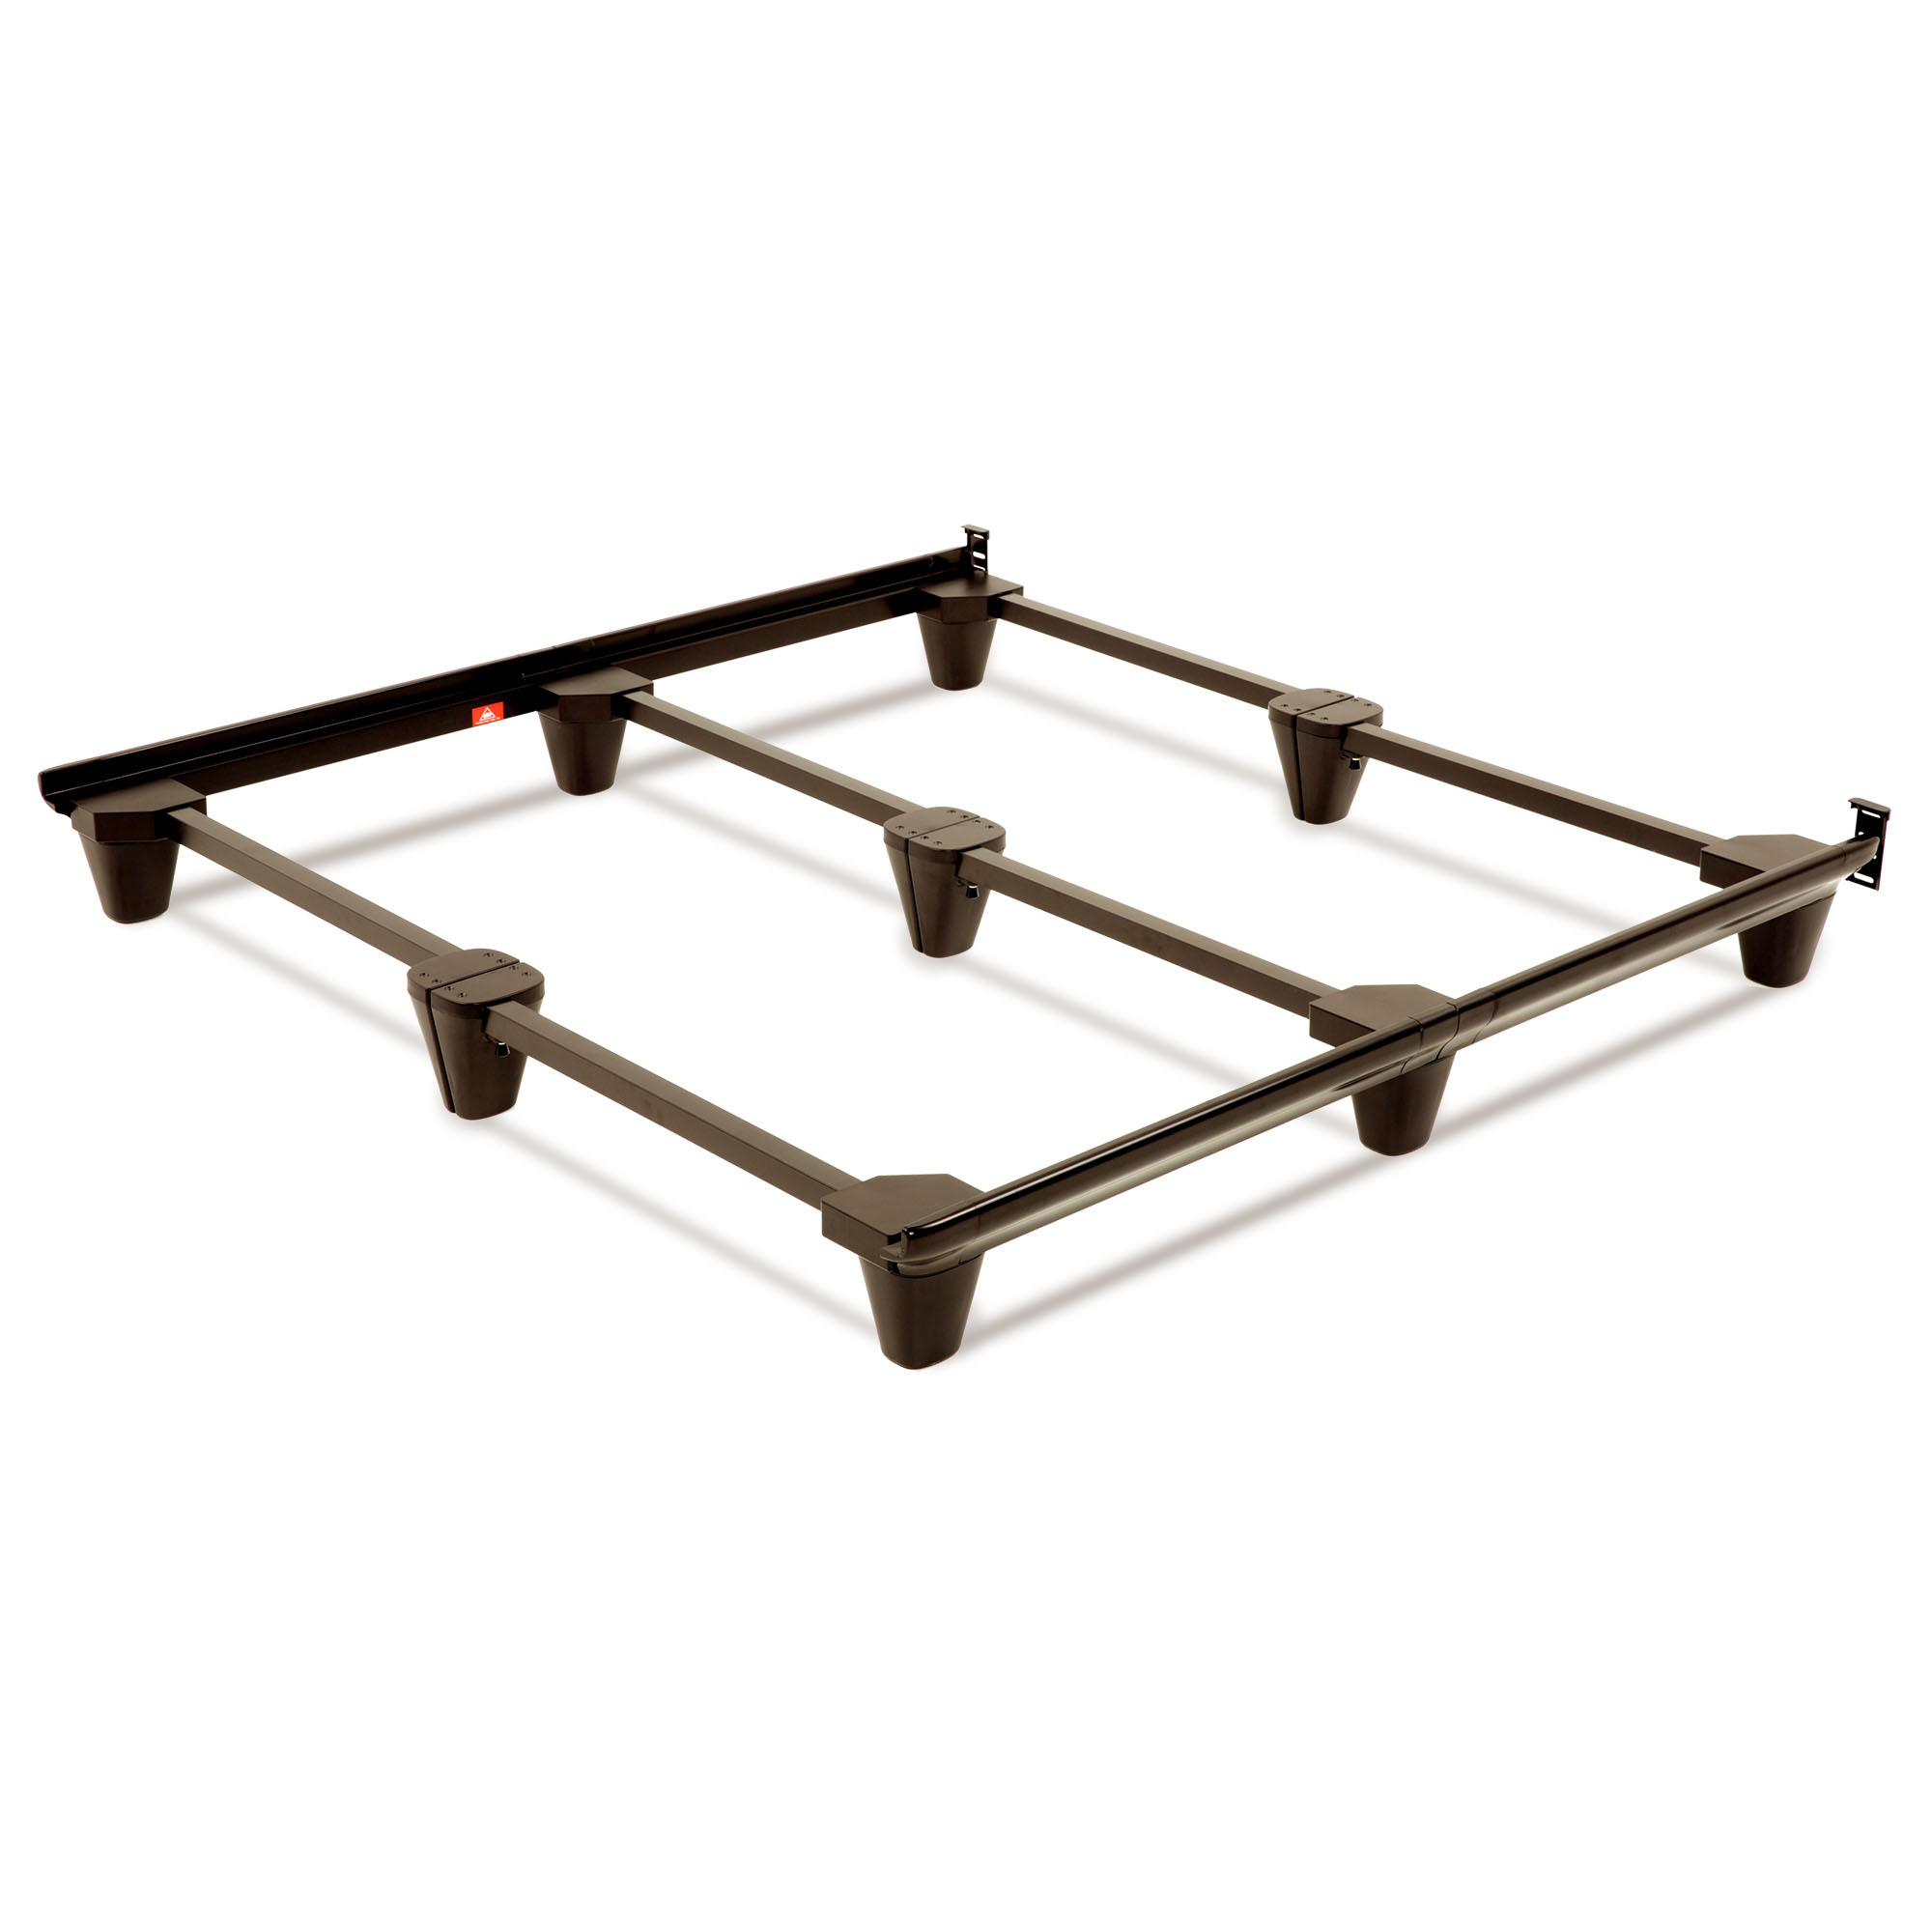 Presto Universal Sized Folding Bed Frame with Headboard Brackets